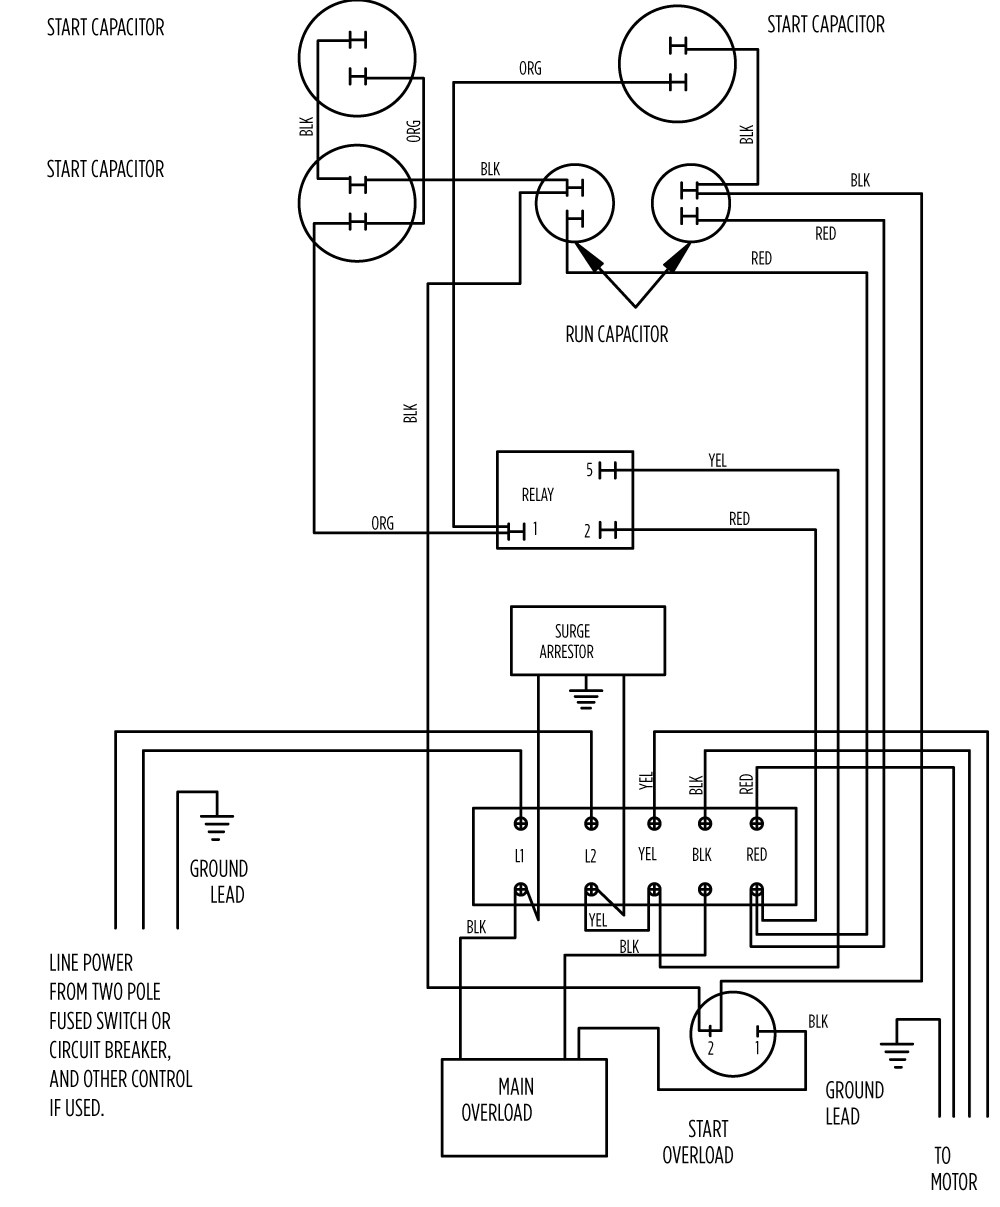 10 hp standard 282 202 9210 or 282 202 9230_aim gallery?format=jpg&quality=80 aim manual page 57 single phase motors and controls motor Control Panel Electrical Wiring Basics at honlapkeszites.co